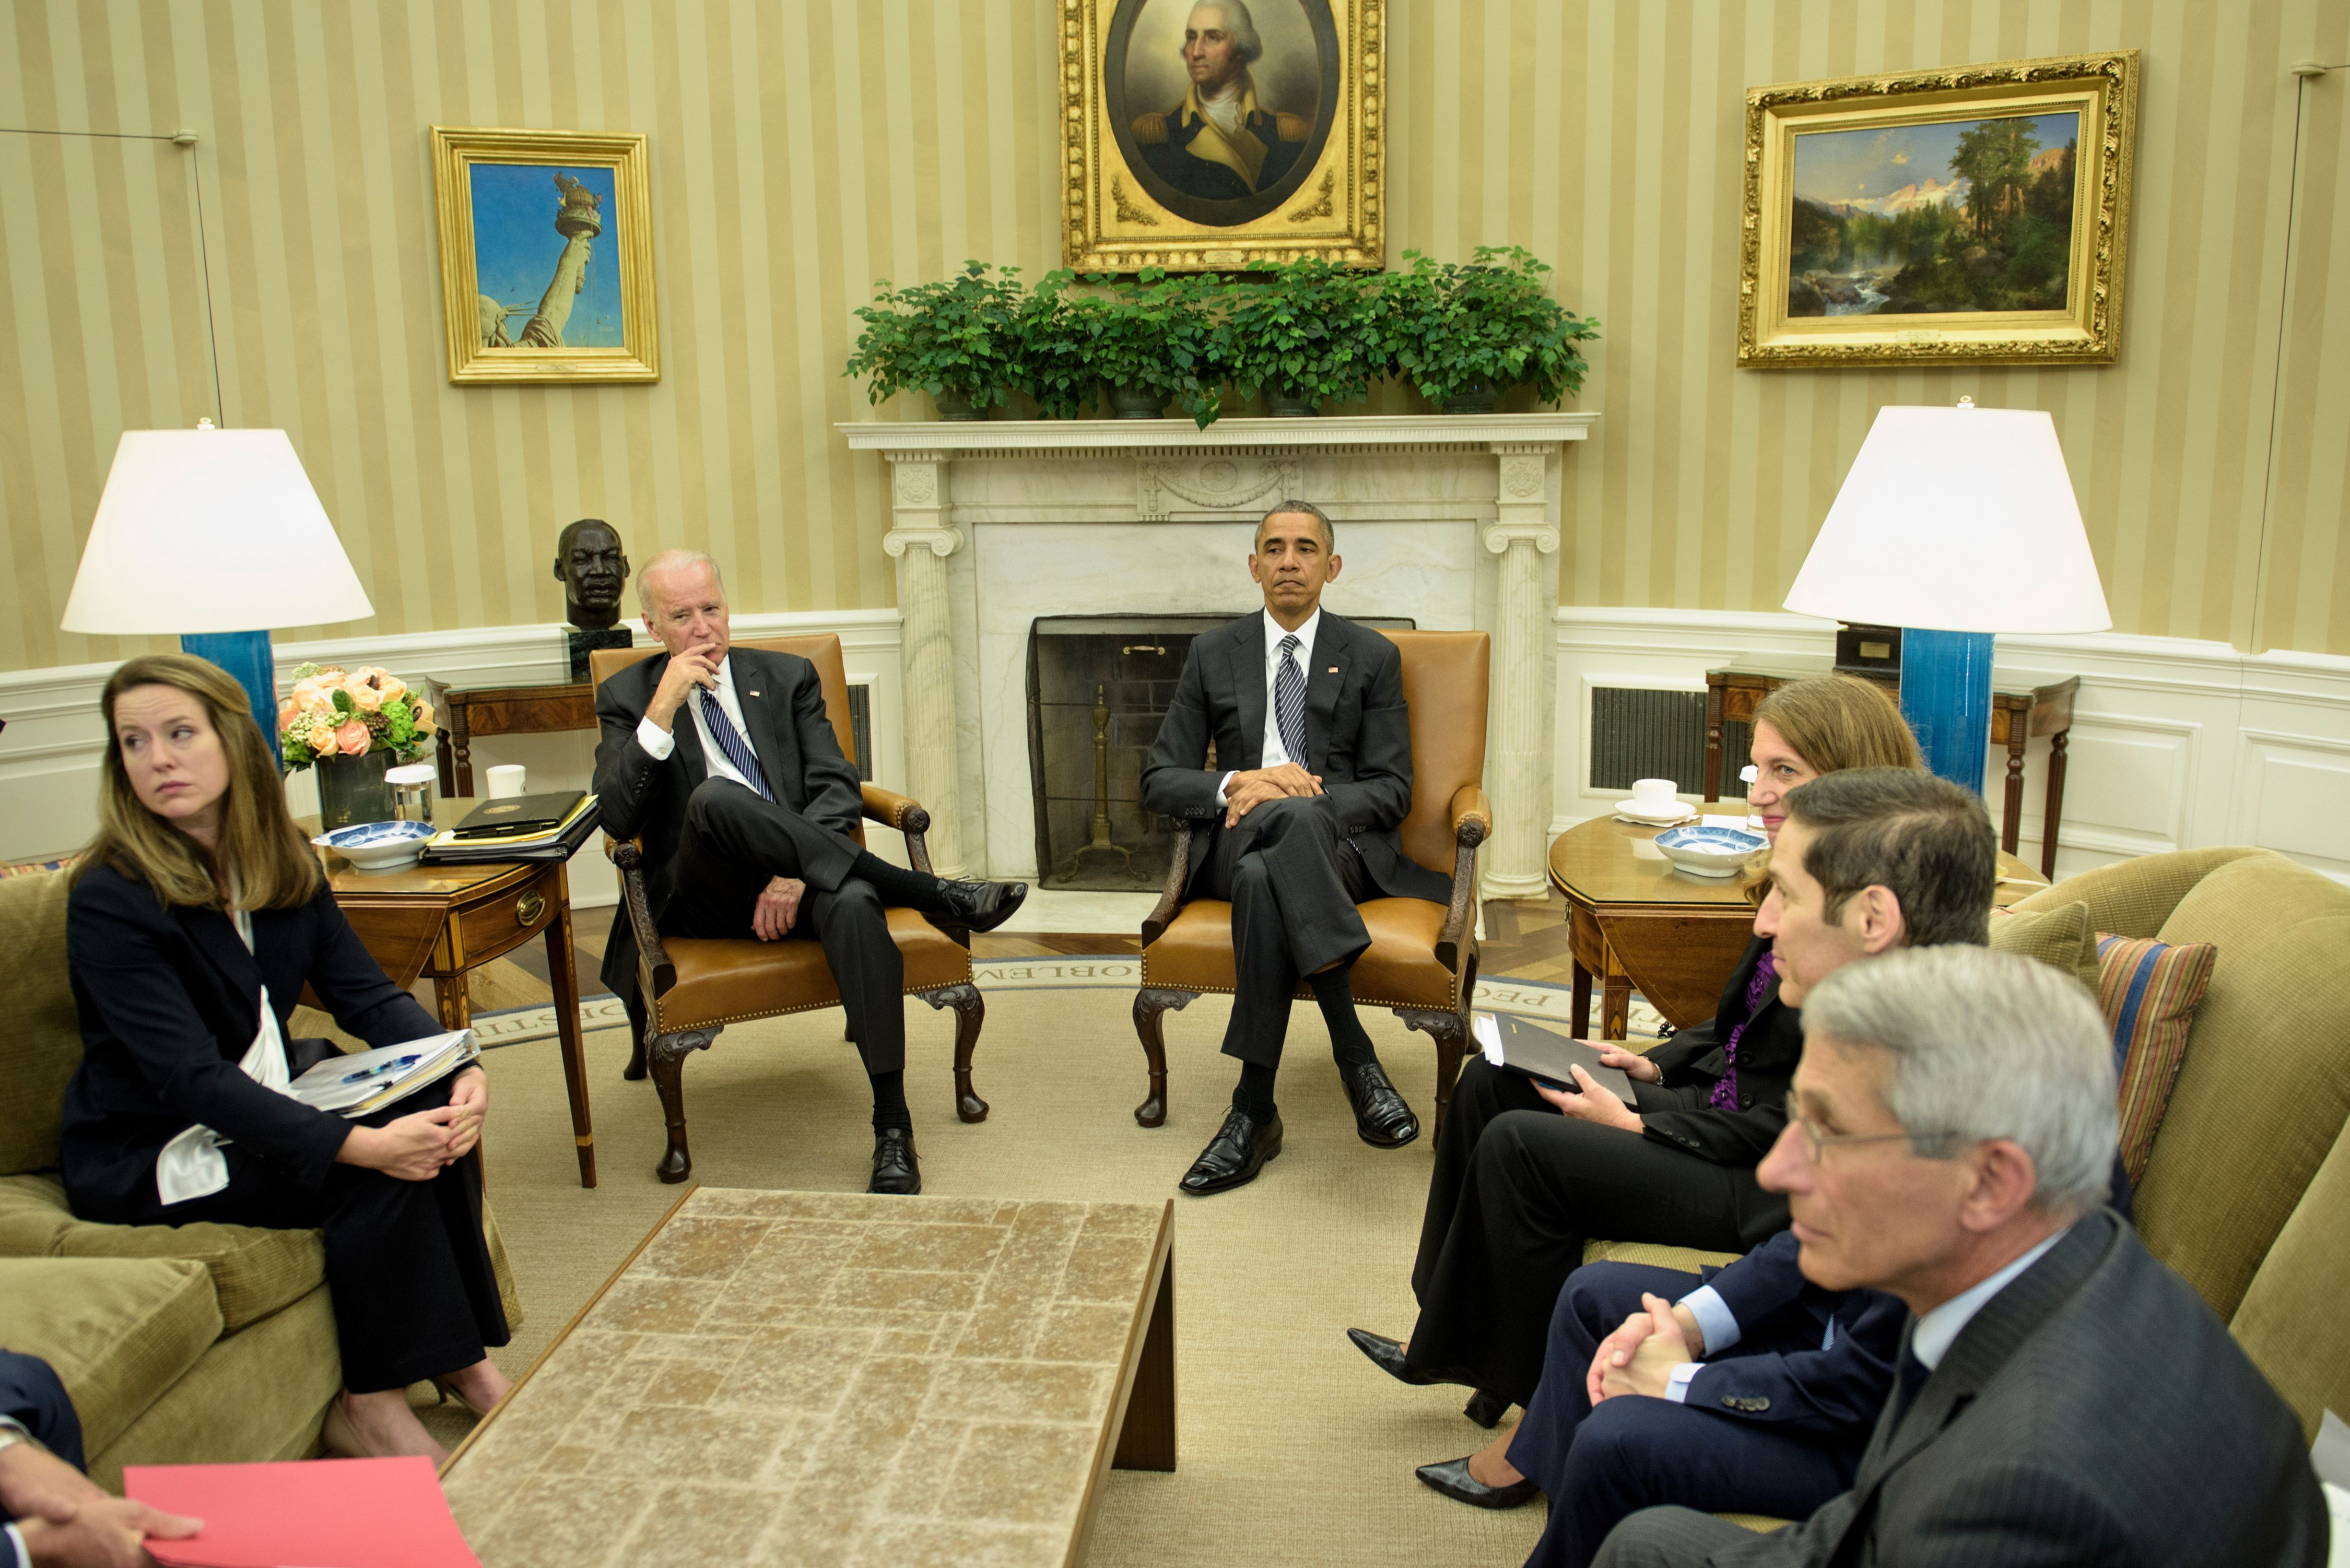 (L-R) Amy Pope, Deputy Homeland Security Advisor, US Vice President Joe R. Biden, US President Barack Obama, US Secretary of Health and Human Services Sylvia Burwell, National Institute of Allergy and Infectious Diseases Director Dr. Anthony Fauci, and Centers for Disease Control and Prevention Director Dr. Tom Frieden wait after a meeting about the Zika virus in the Oval Office of the White House BRENDAN SMIALOWSKI—AFP/Getty Images